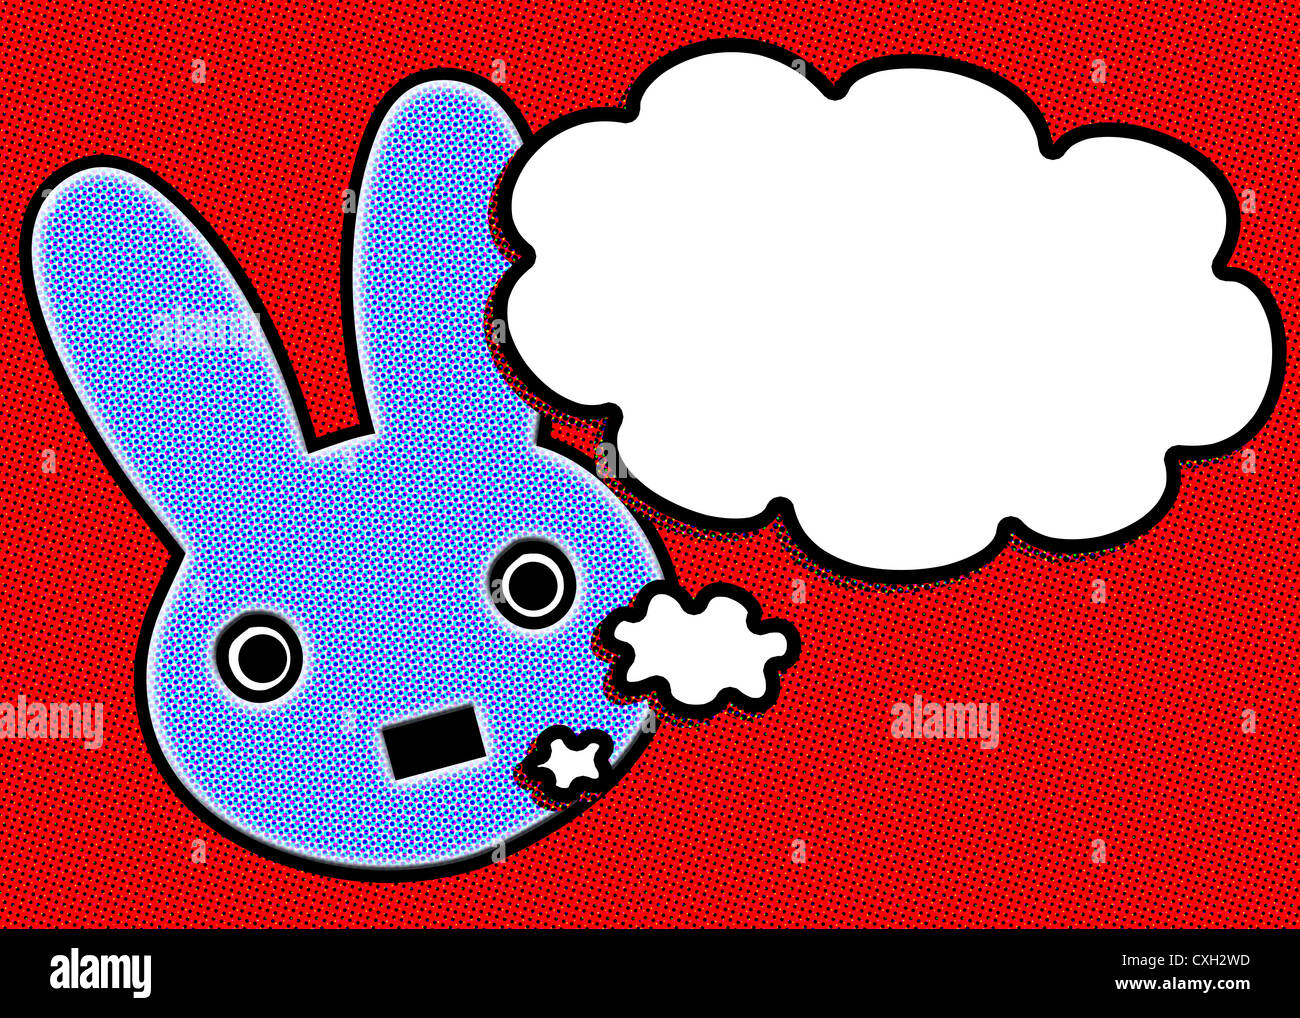 Blue rabbit on red background with a talk bubble - Stock Image